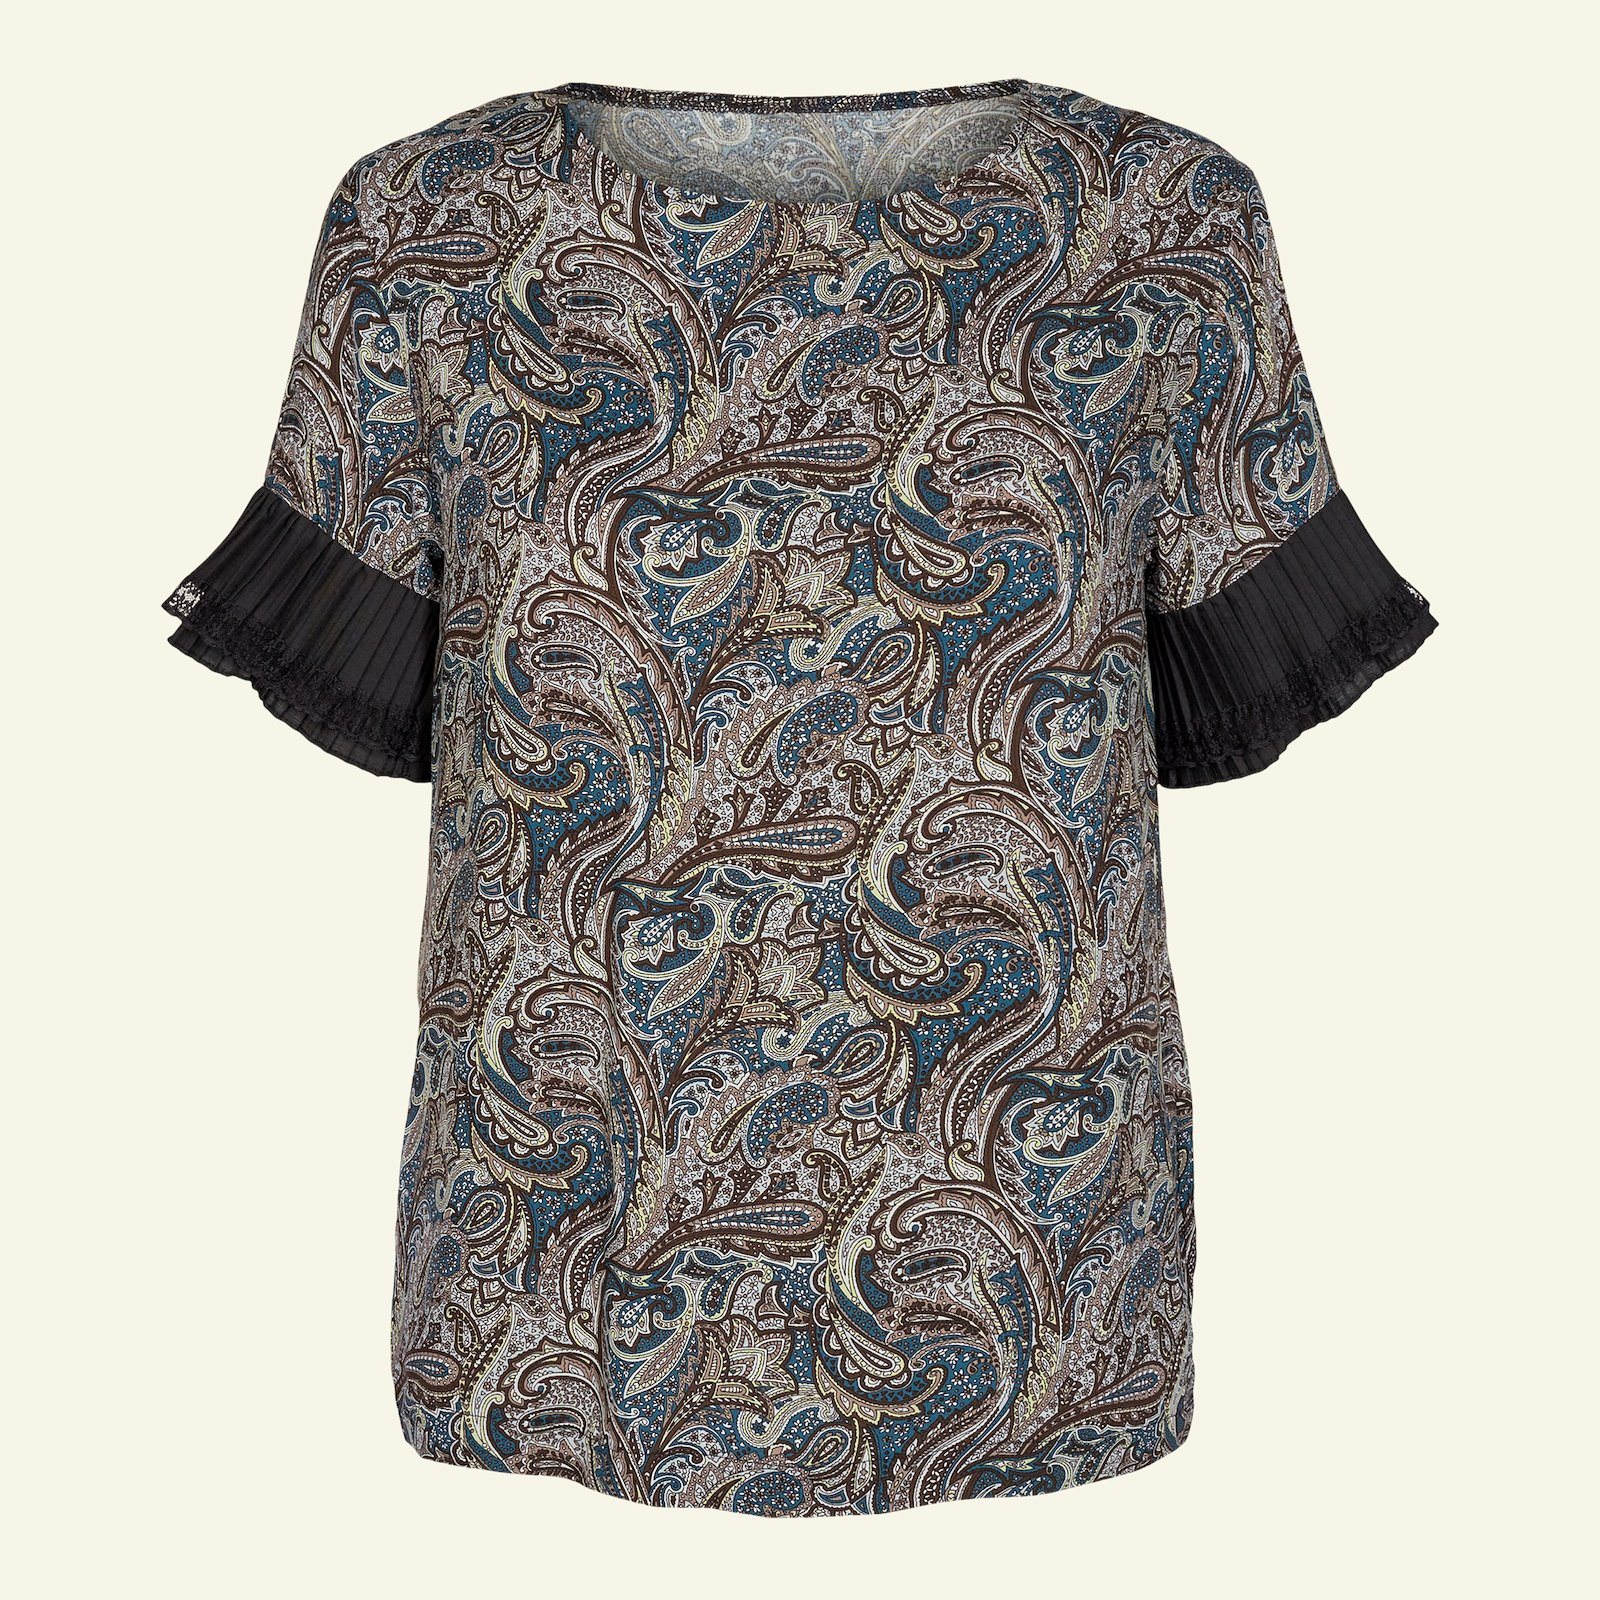 Blouse with flounce, 46/18 p22061_710632_96323_sskit